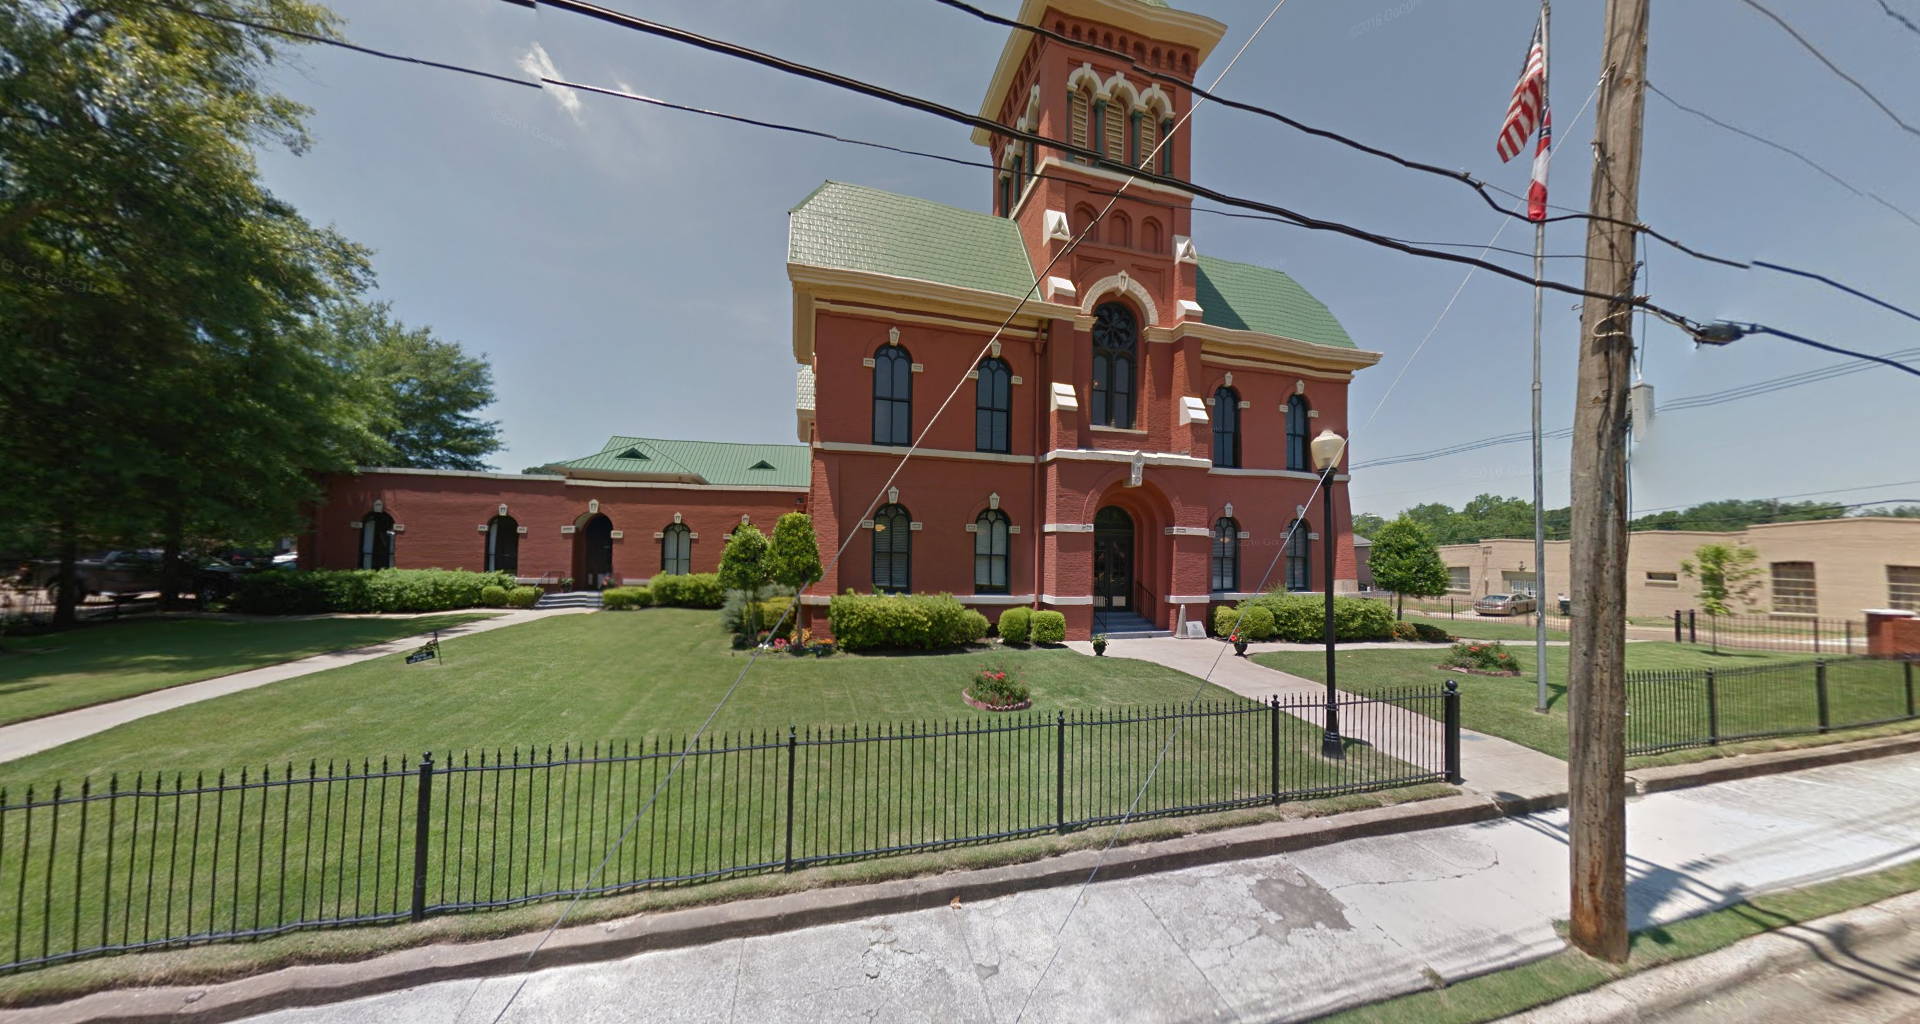 Tate County Vital Records in Tate, Mississippi | Get ...